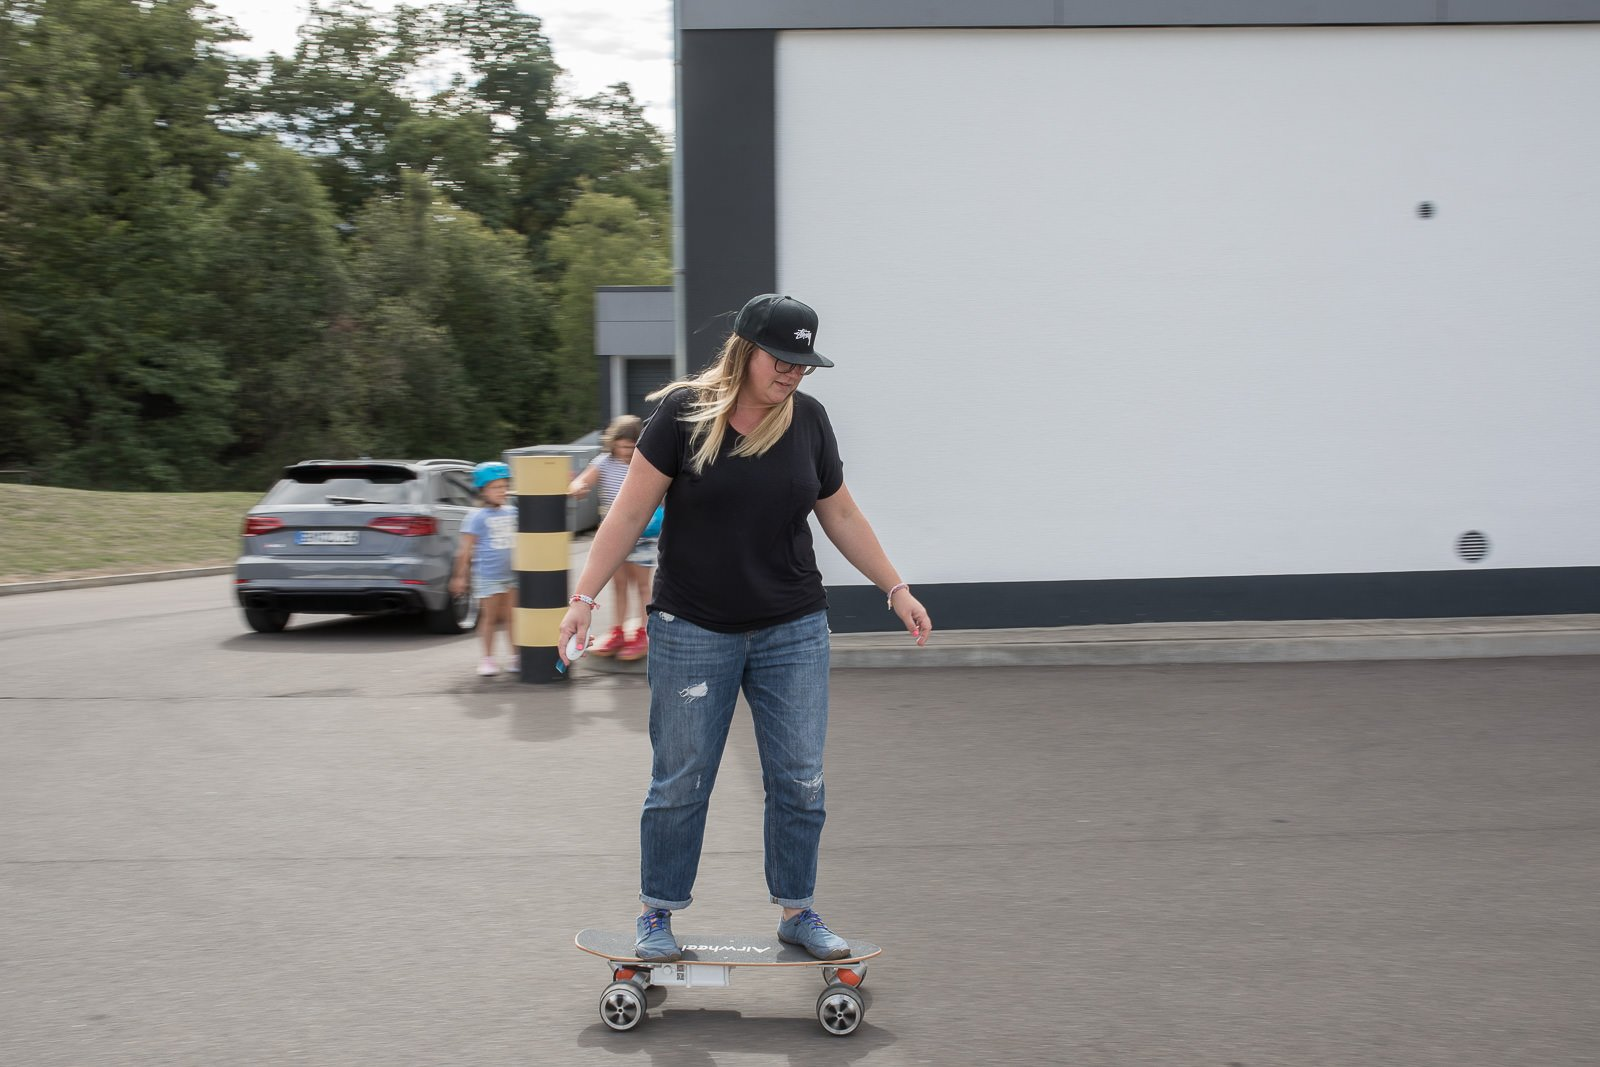 airwheel skateboard